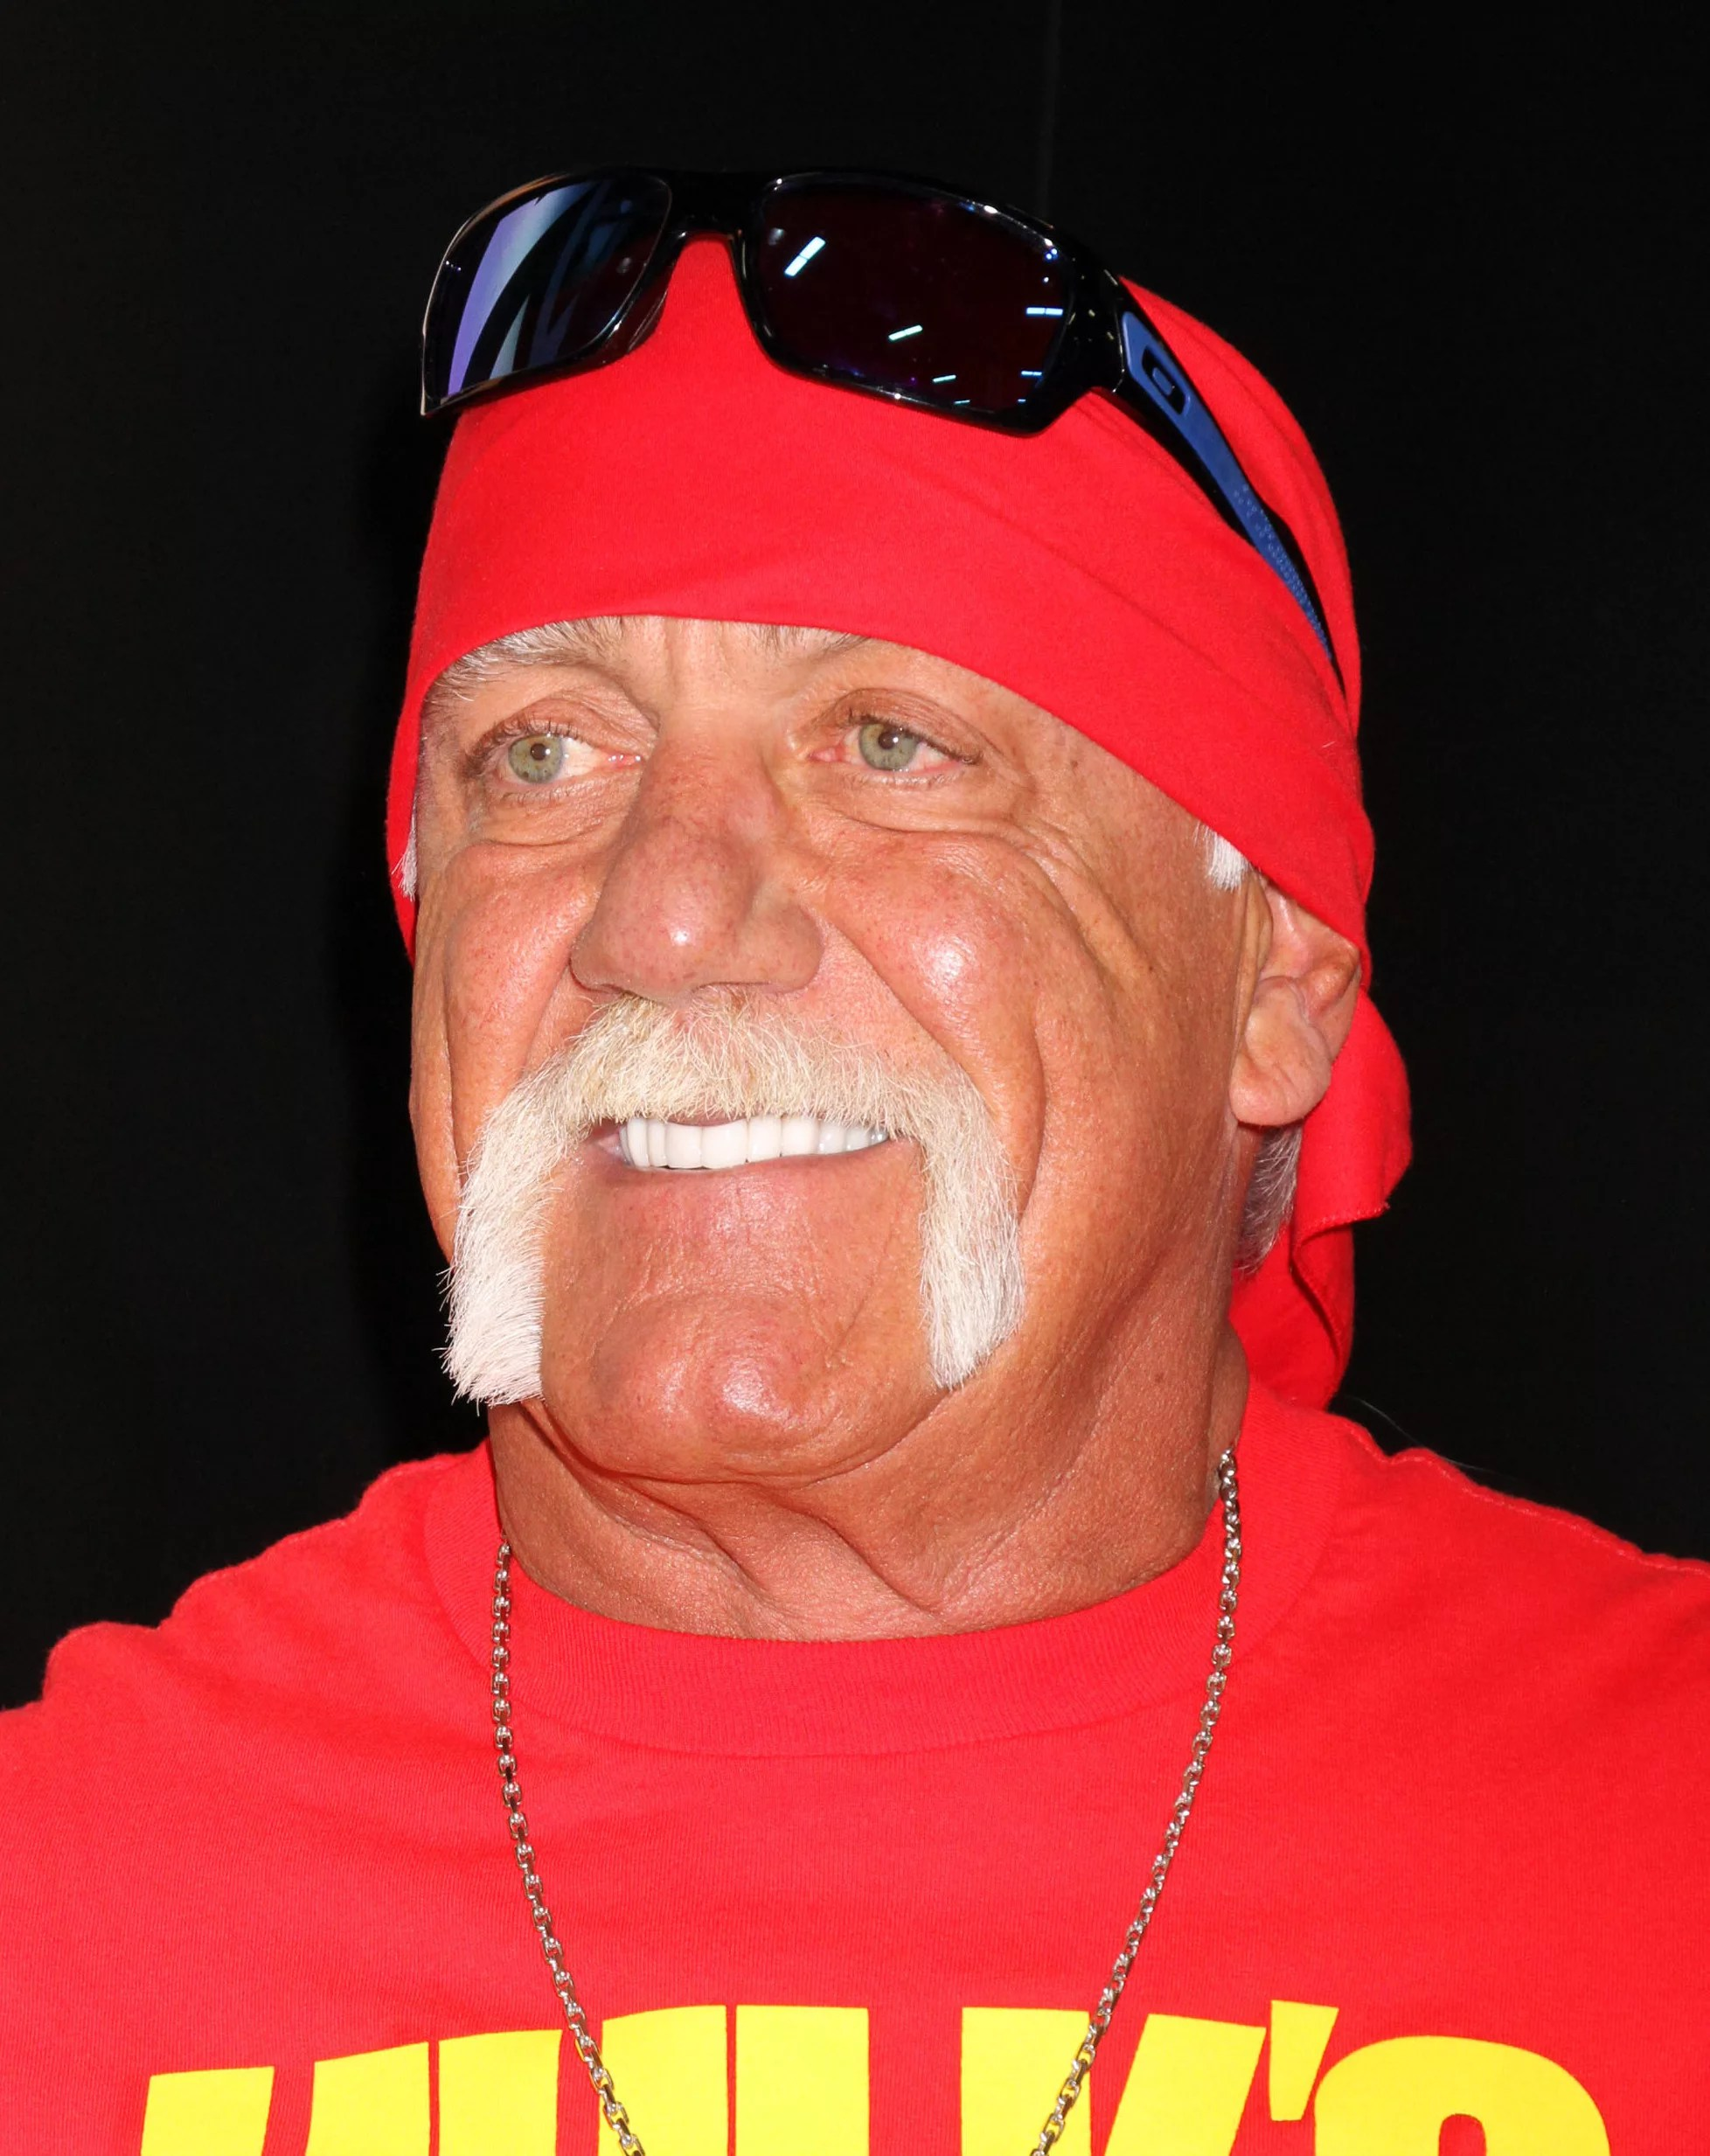 Hulk Hogan Twitter Hulk Hogan Cites God On Twitter Refers To Self As